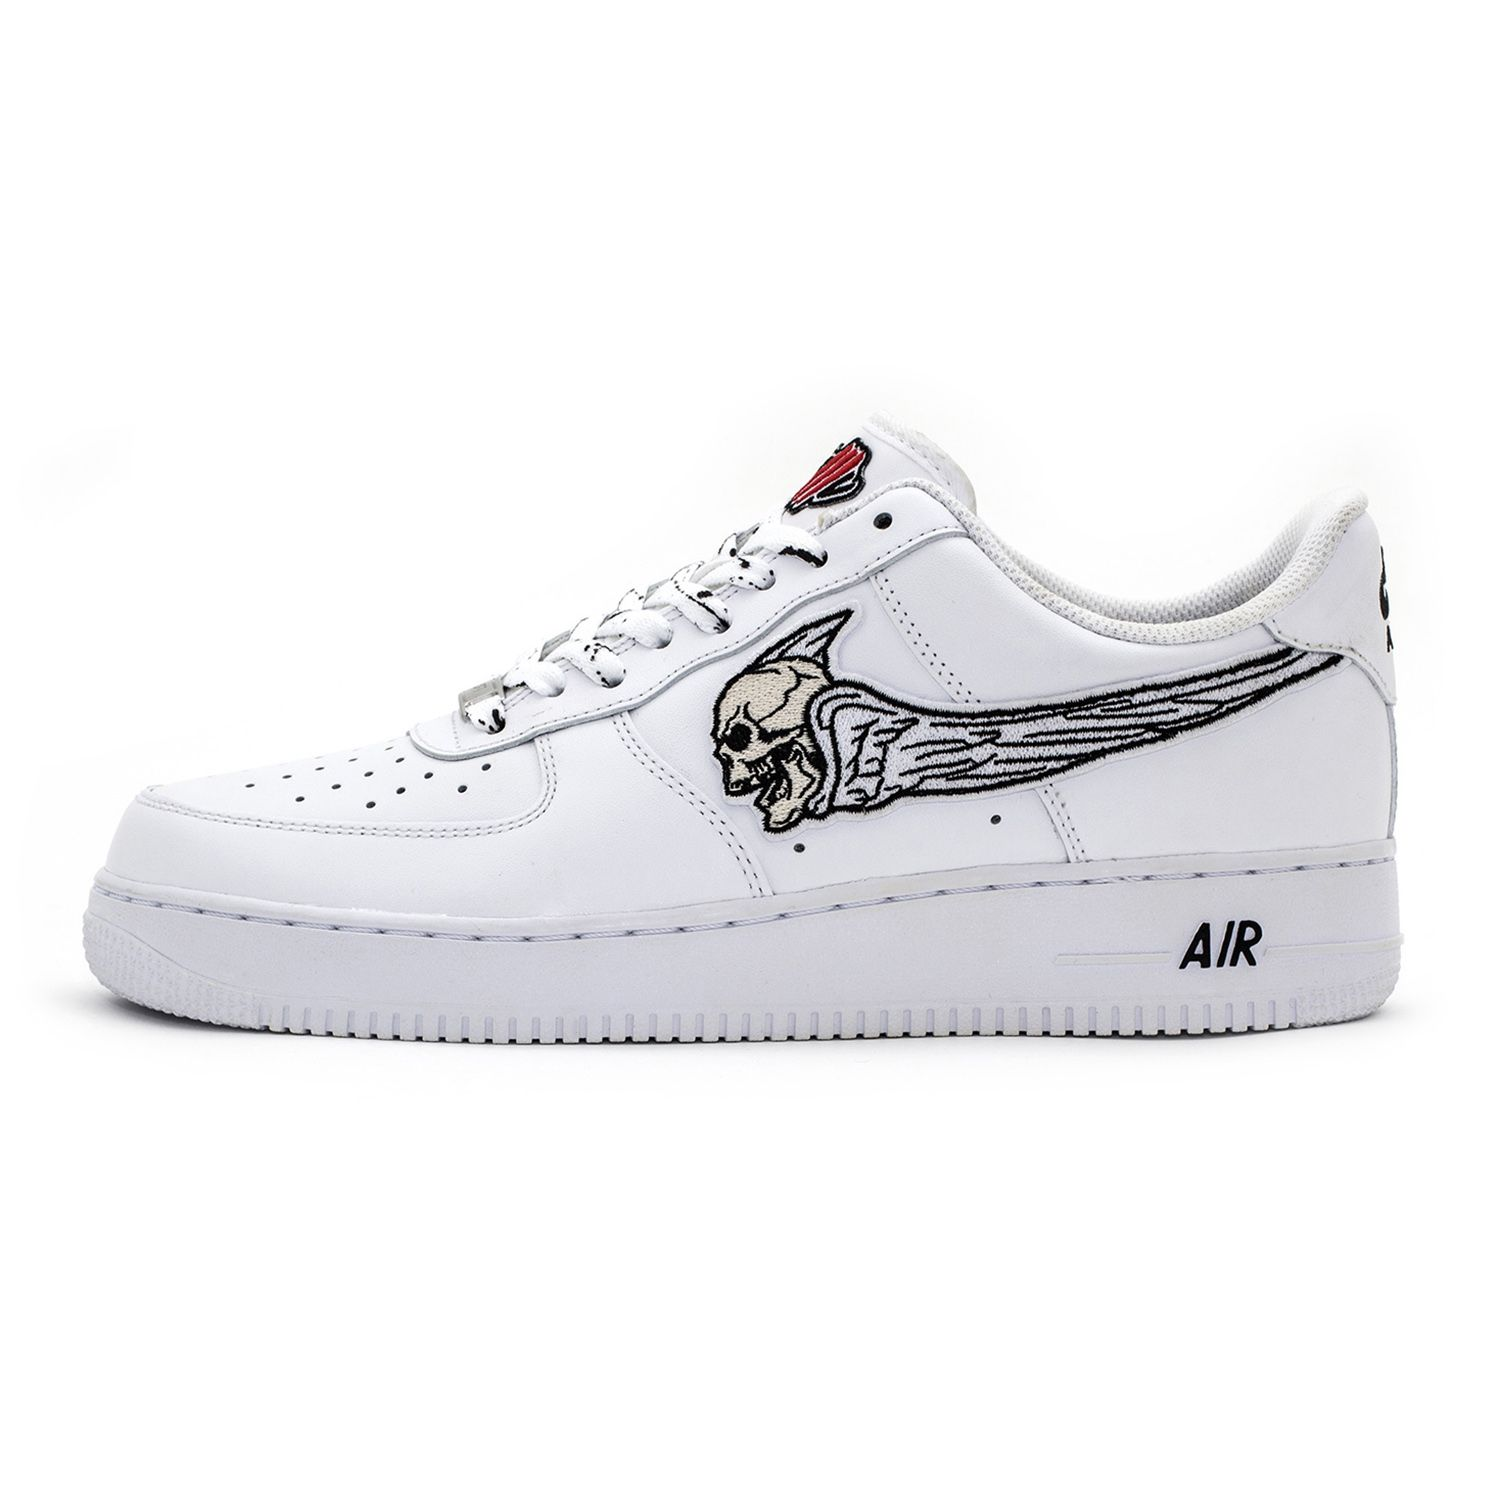 ГРЕШНИК AIR FORCE 1 Bone   White Low Custom Sneakers in 2019 ... 2b63a1e7a